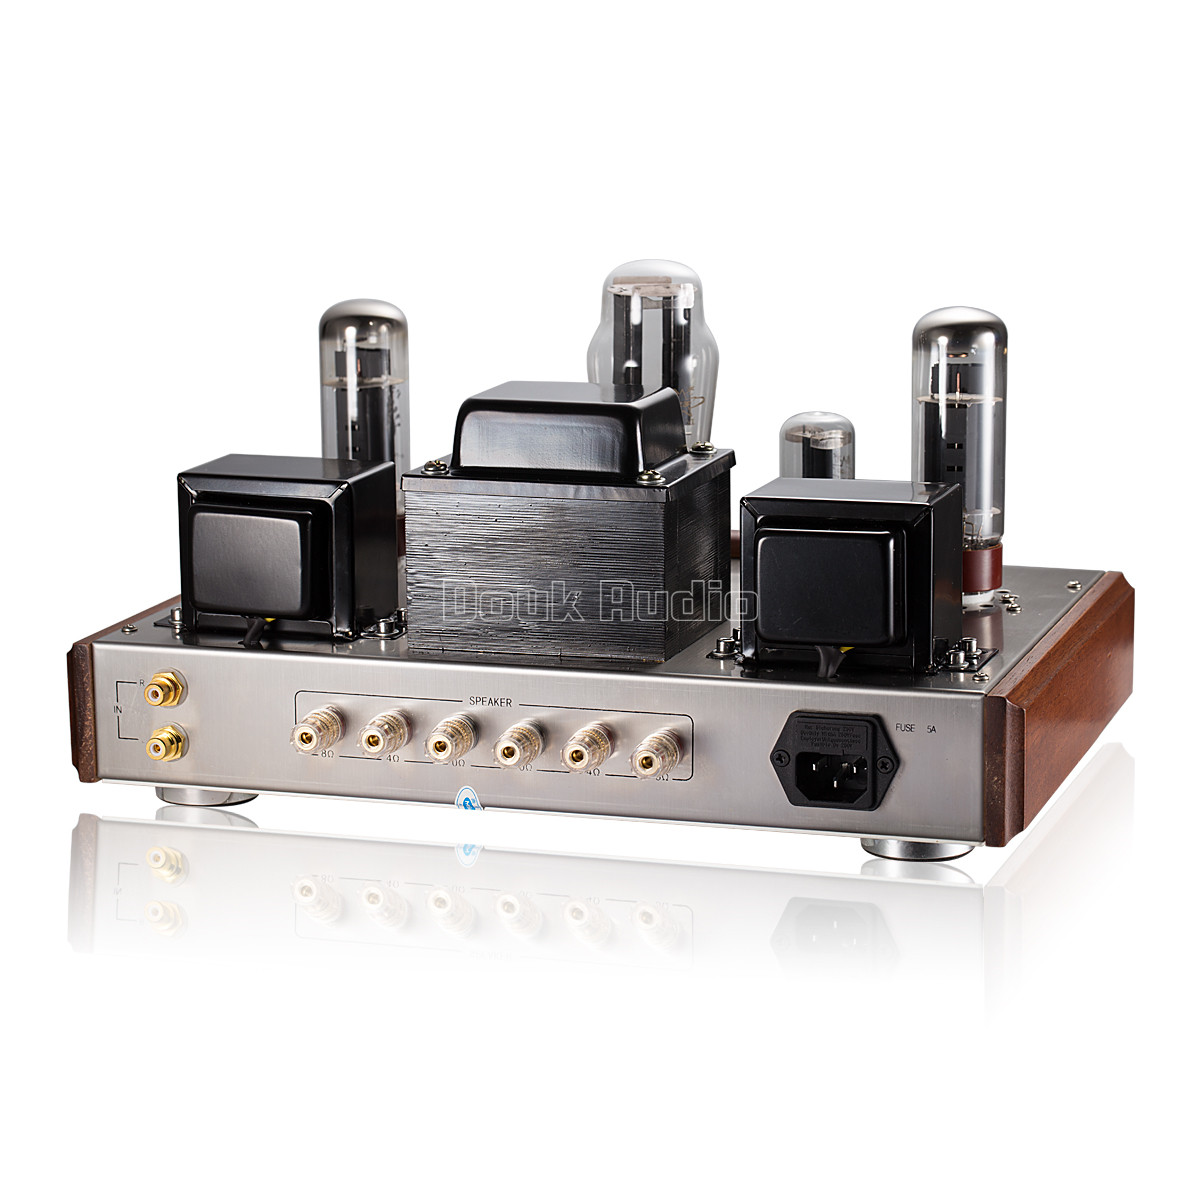 Douk Audio El34 Tube Integrated Amplifier Hifi Stereo Pure Class A Dayton 150w Power Amp